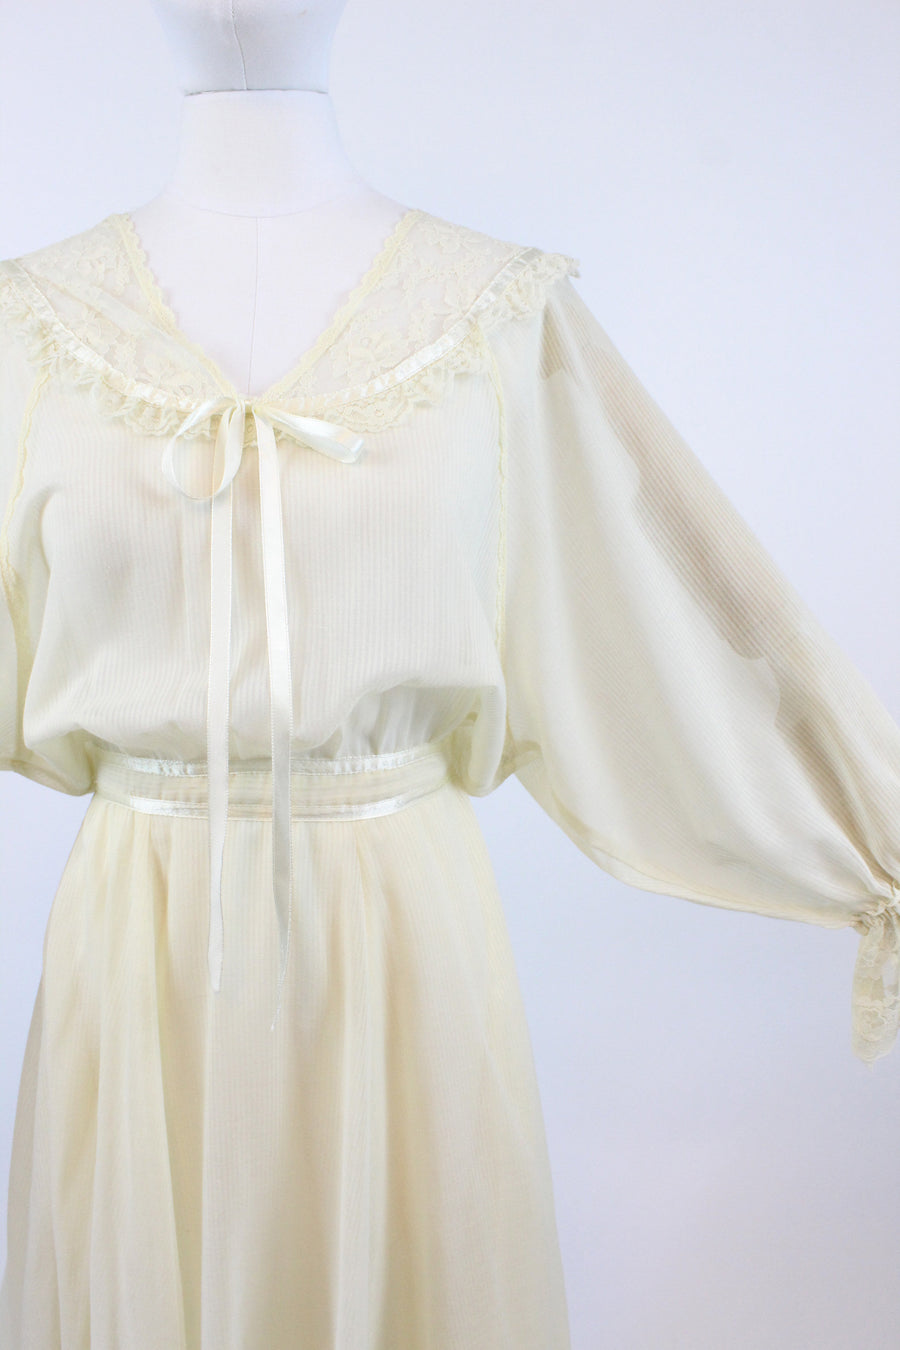 1970s Gunne Sax cotton peasant dress xs | vintage wedding dress | new in